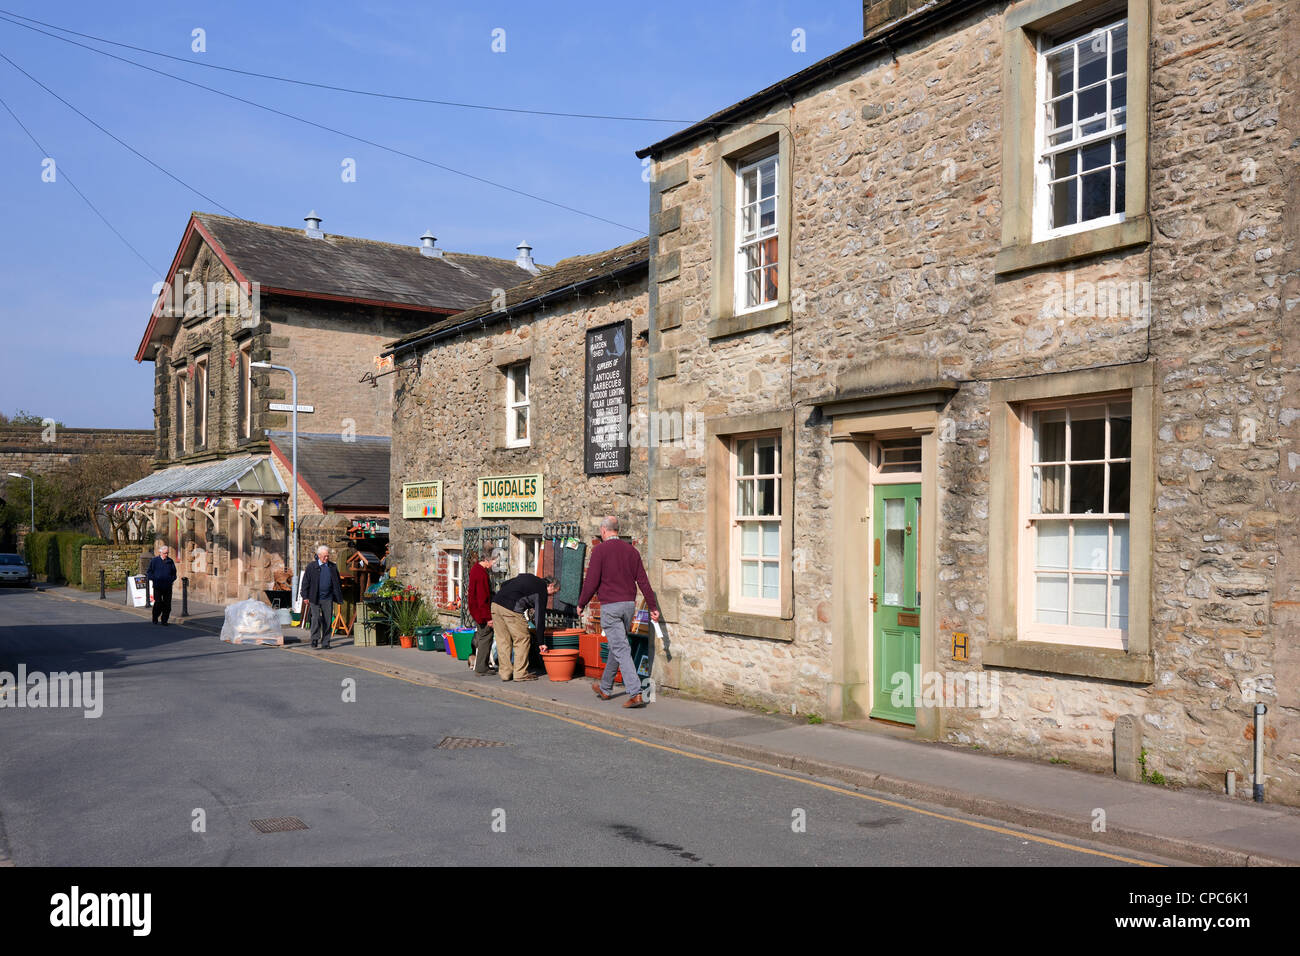 Looking down Kirkgate, Settle, North Yorkshire - Stock Image